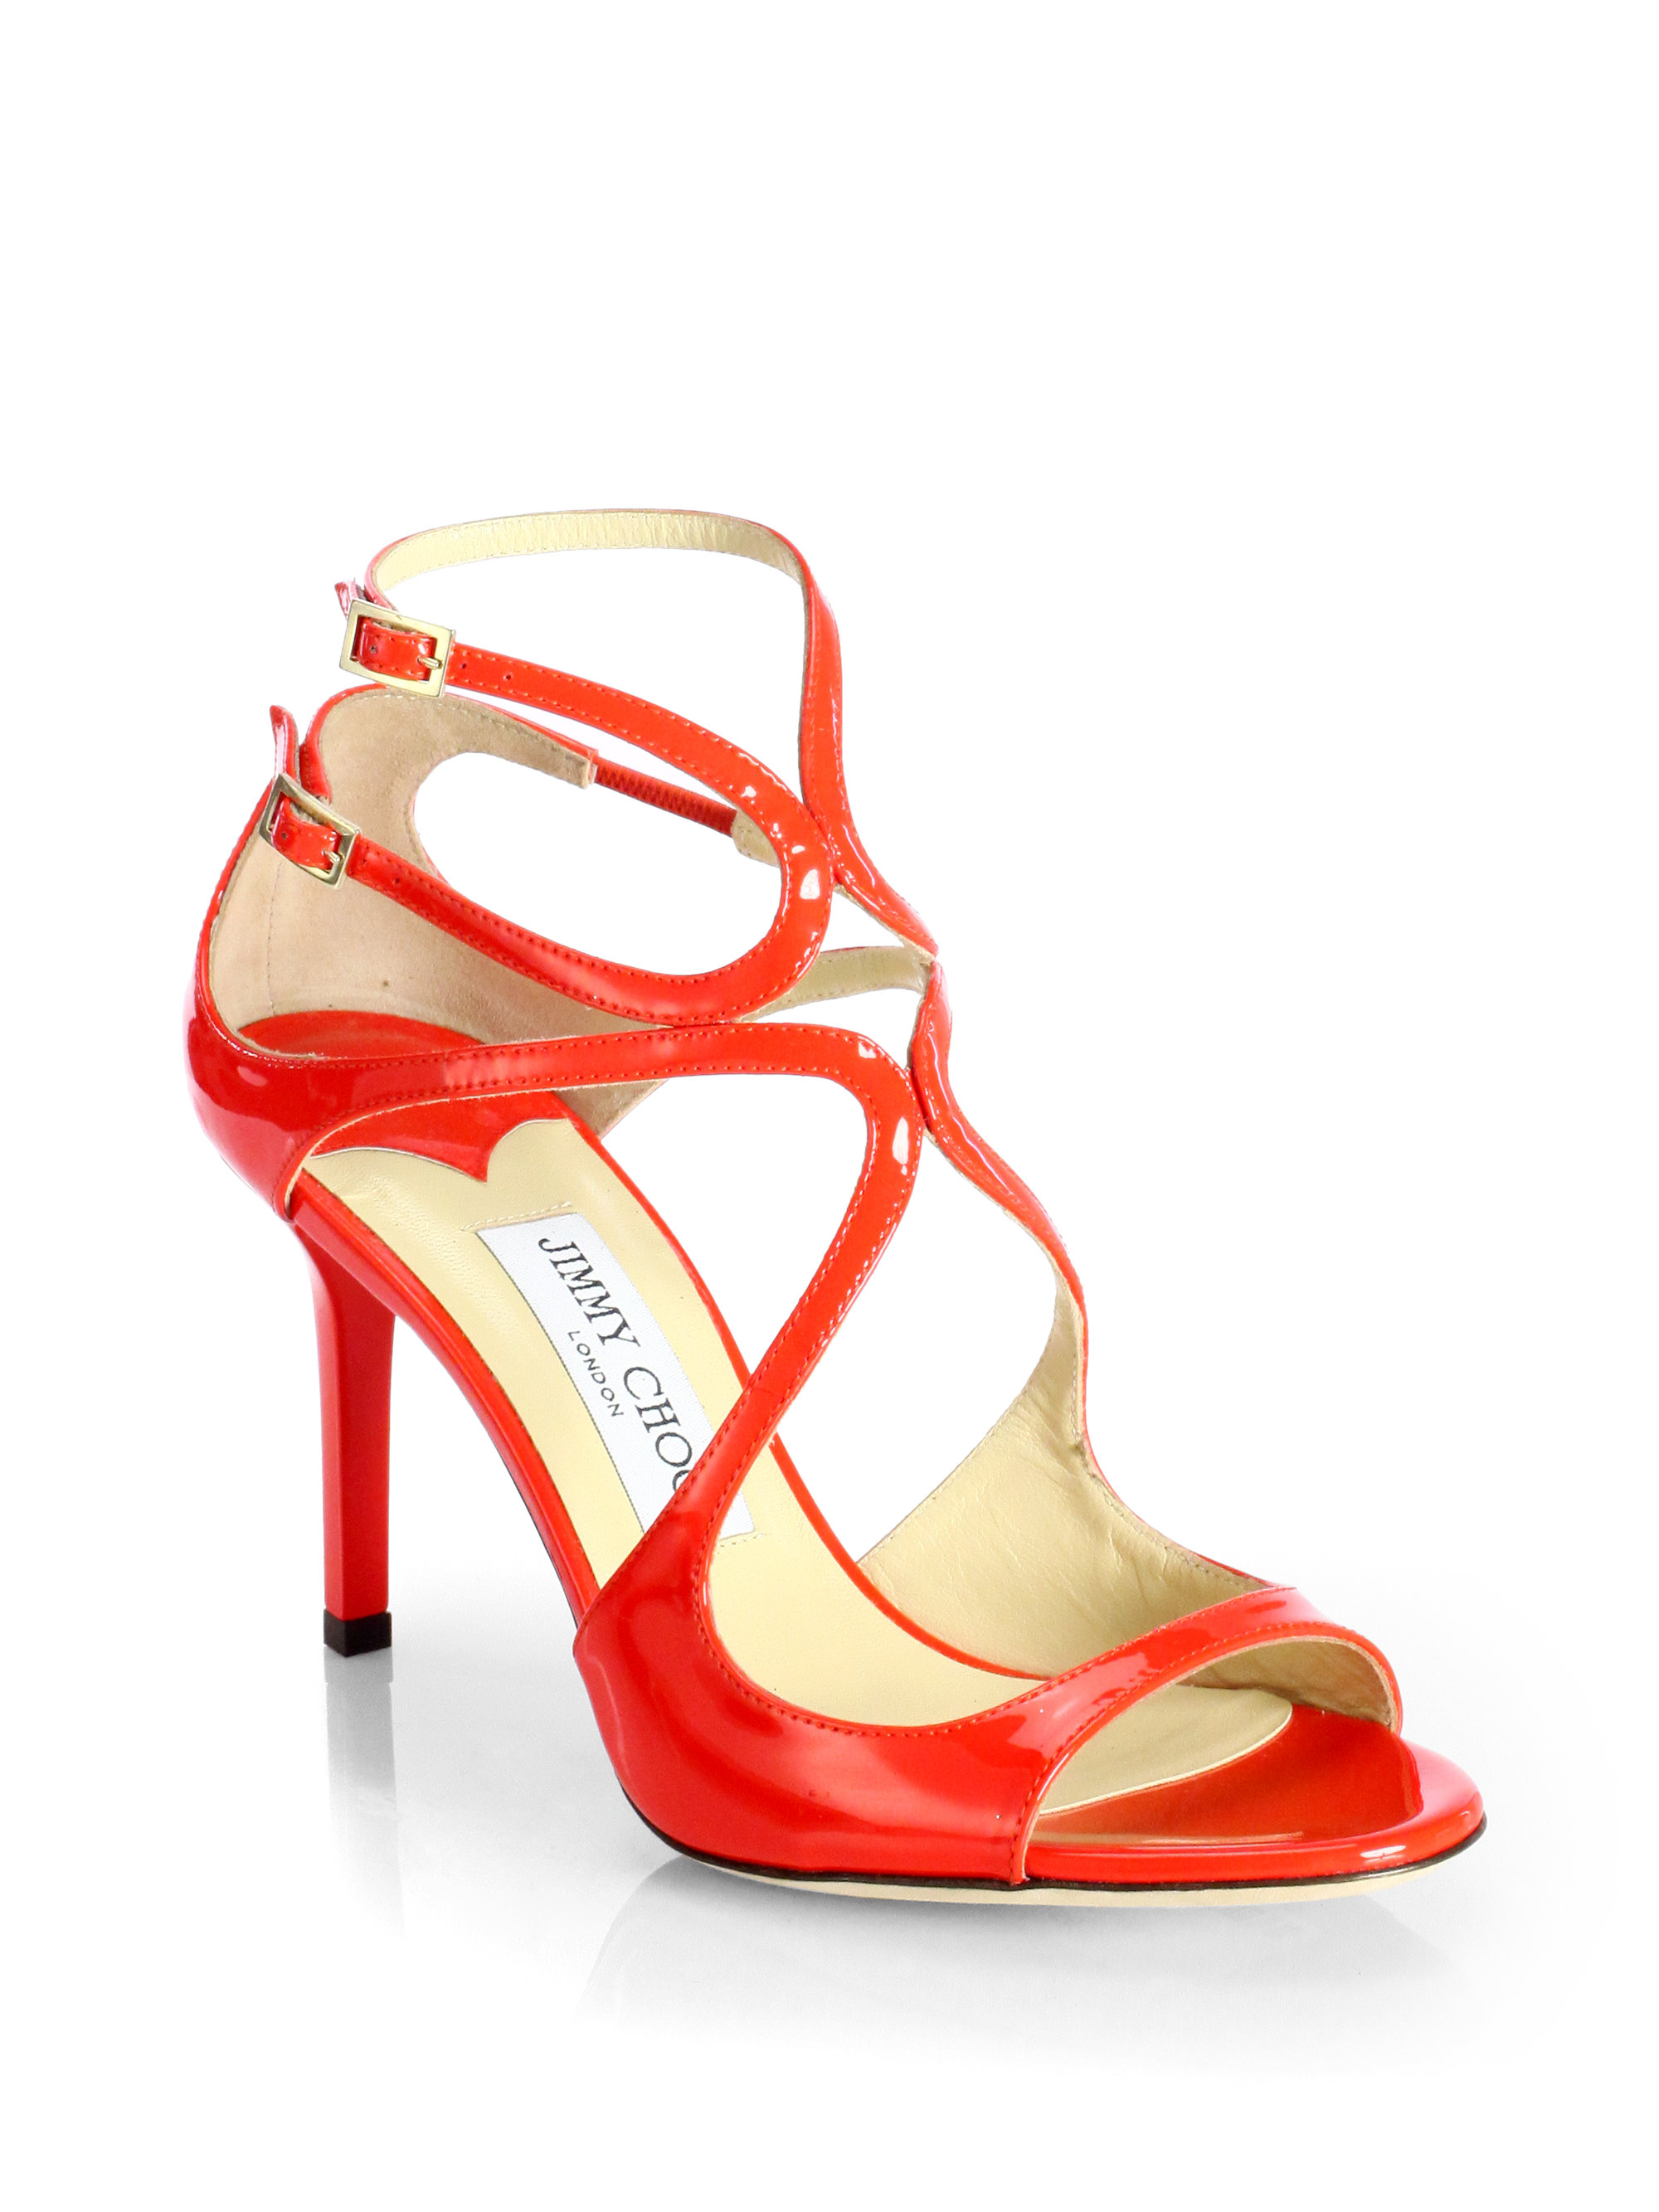 Jimmy Choo Ivette Strappy Patent Leather Sandals In Red